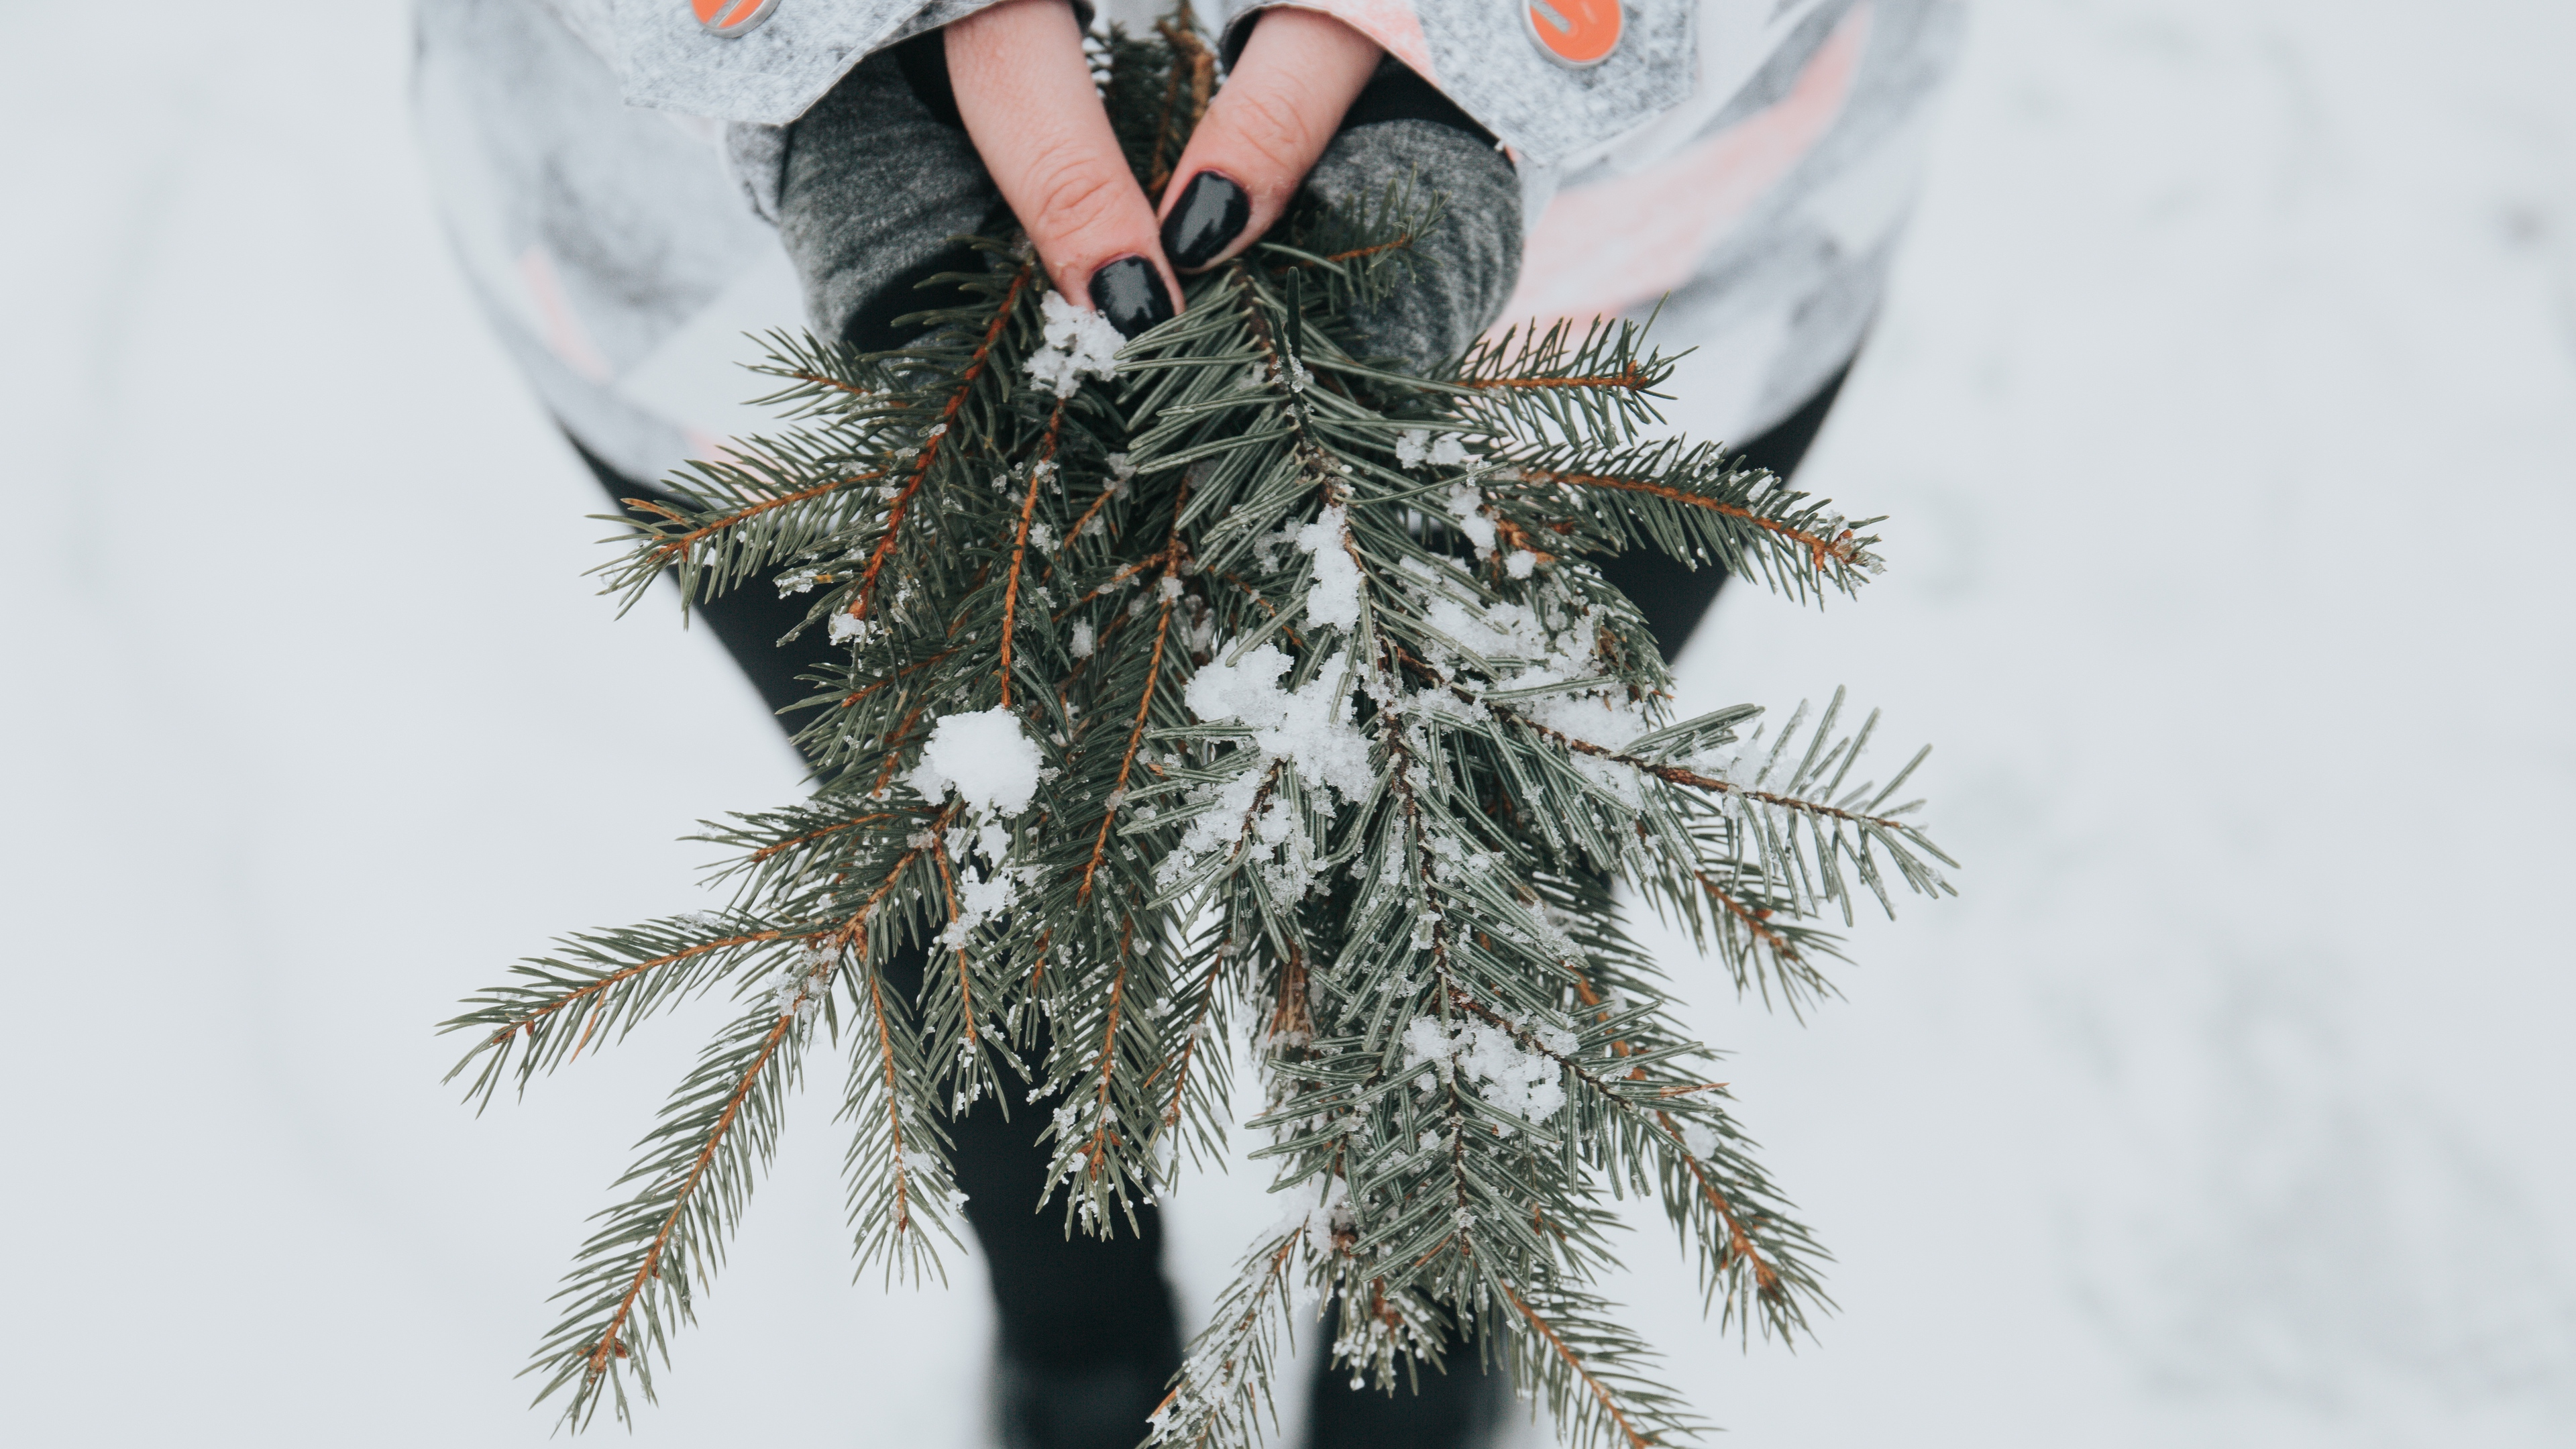 fir snow branches hands 4k 1541114745 - fir, snow, branches, hands 4k - Snow, fir, branches